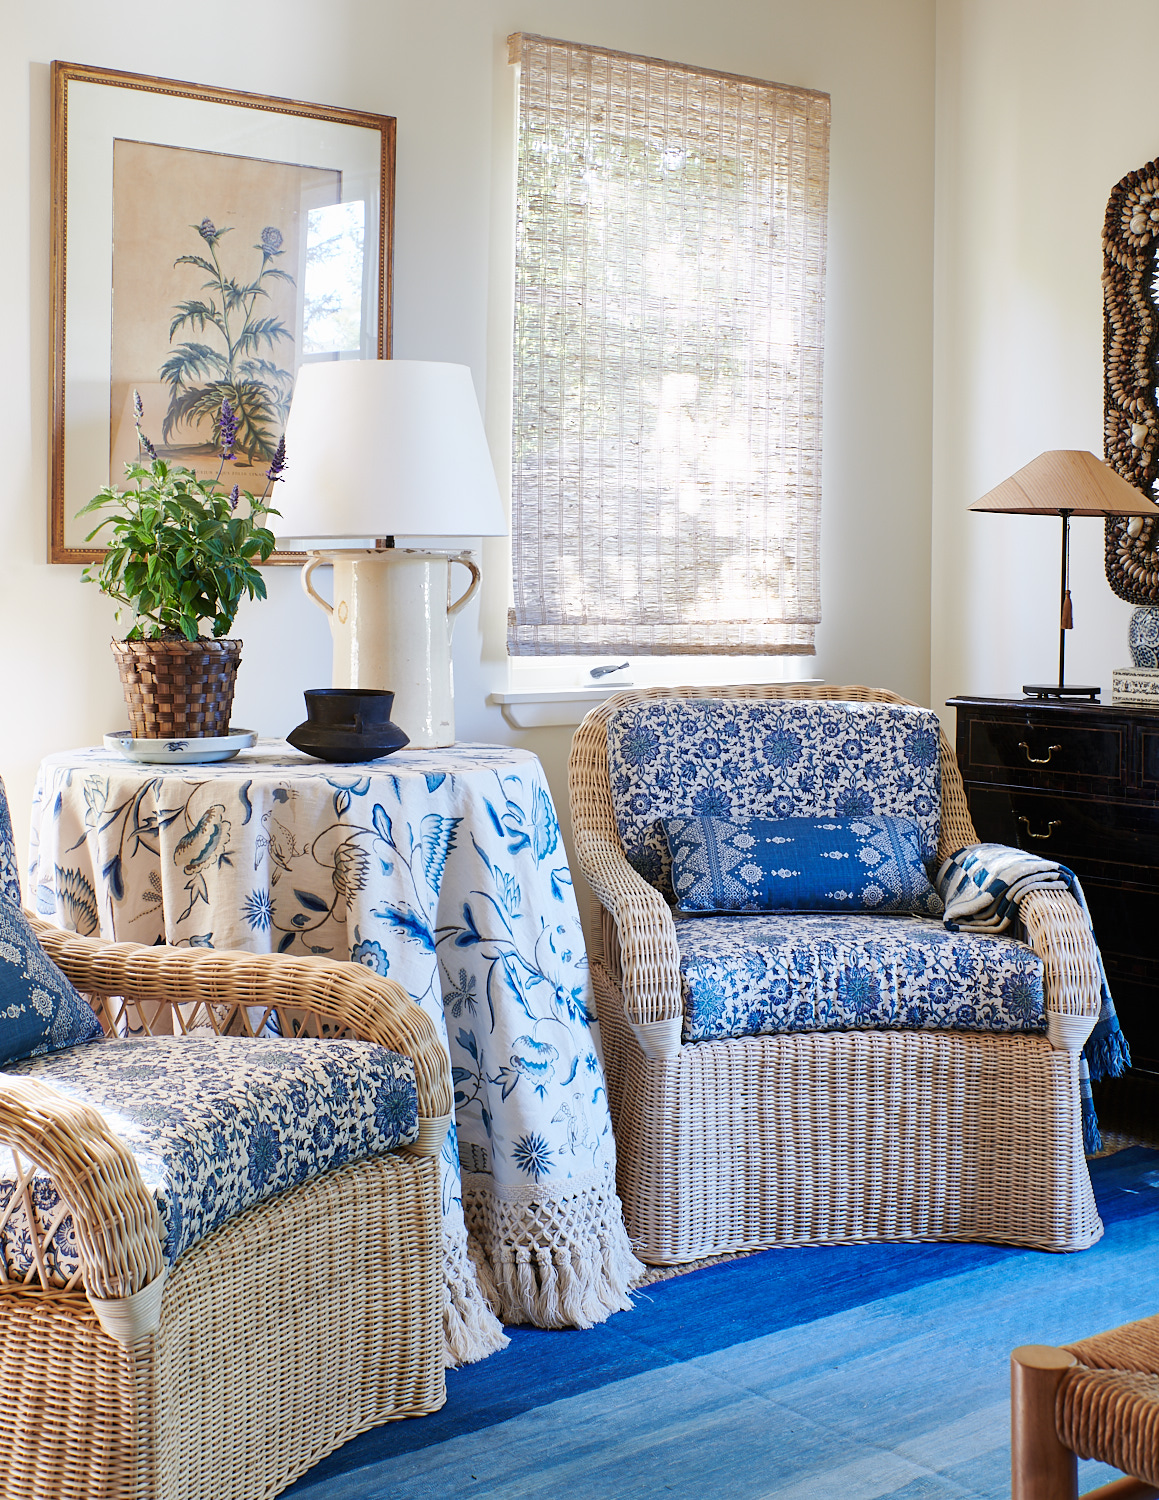 Bamboo roman shades, wicker tea chairs with patterned cushions and kidney pillows